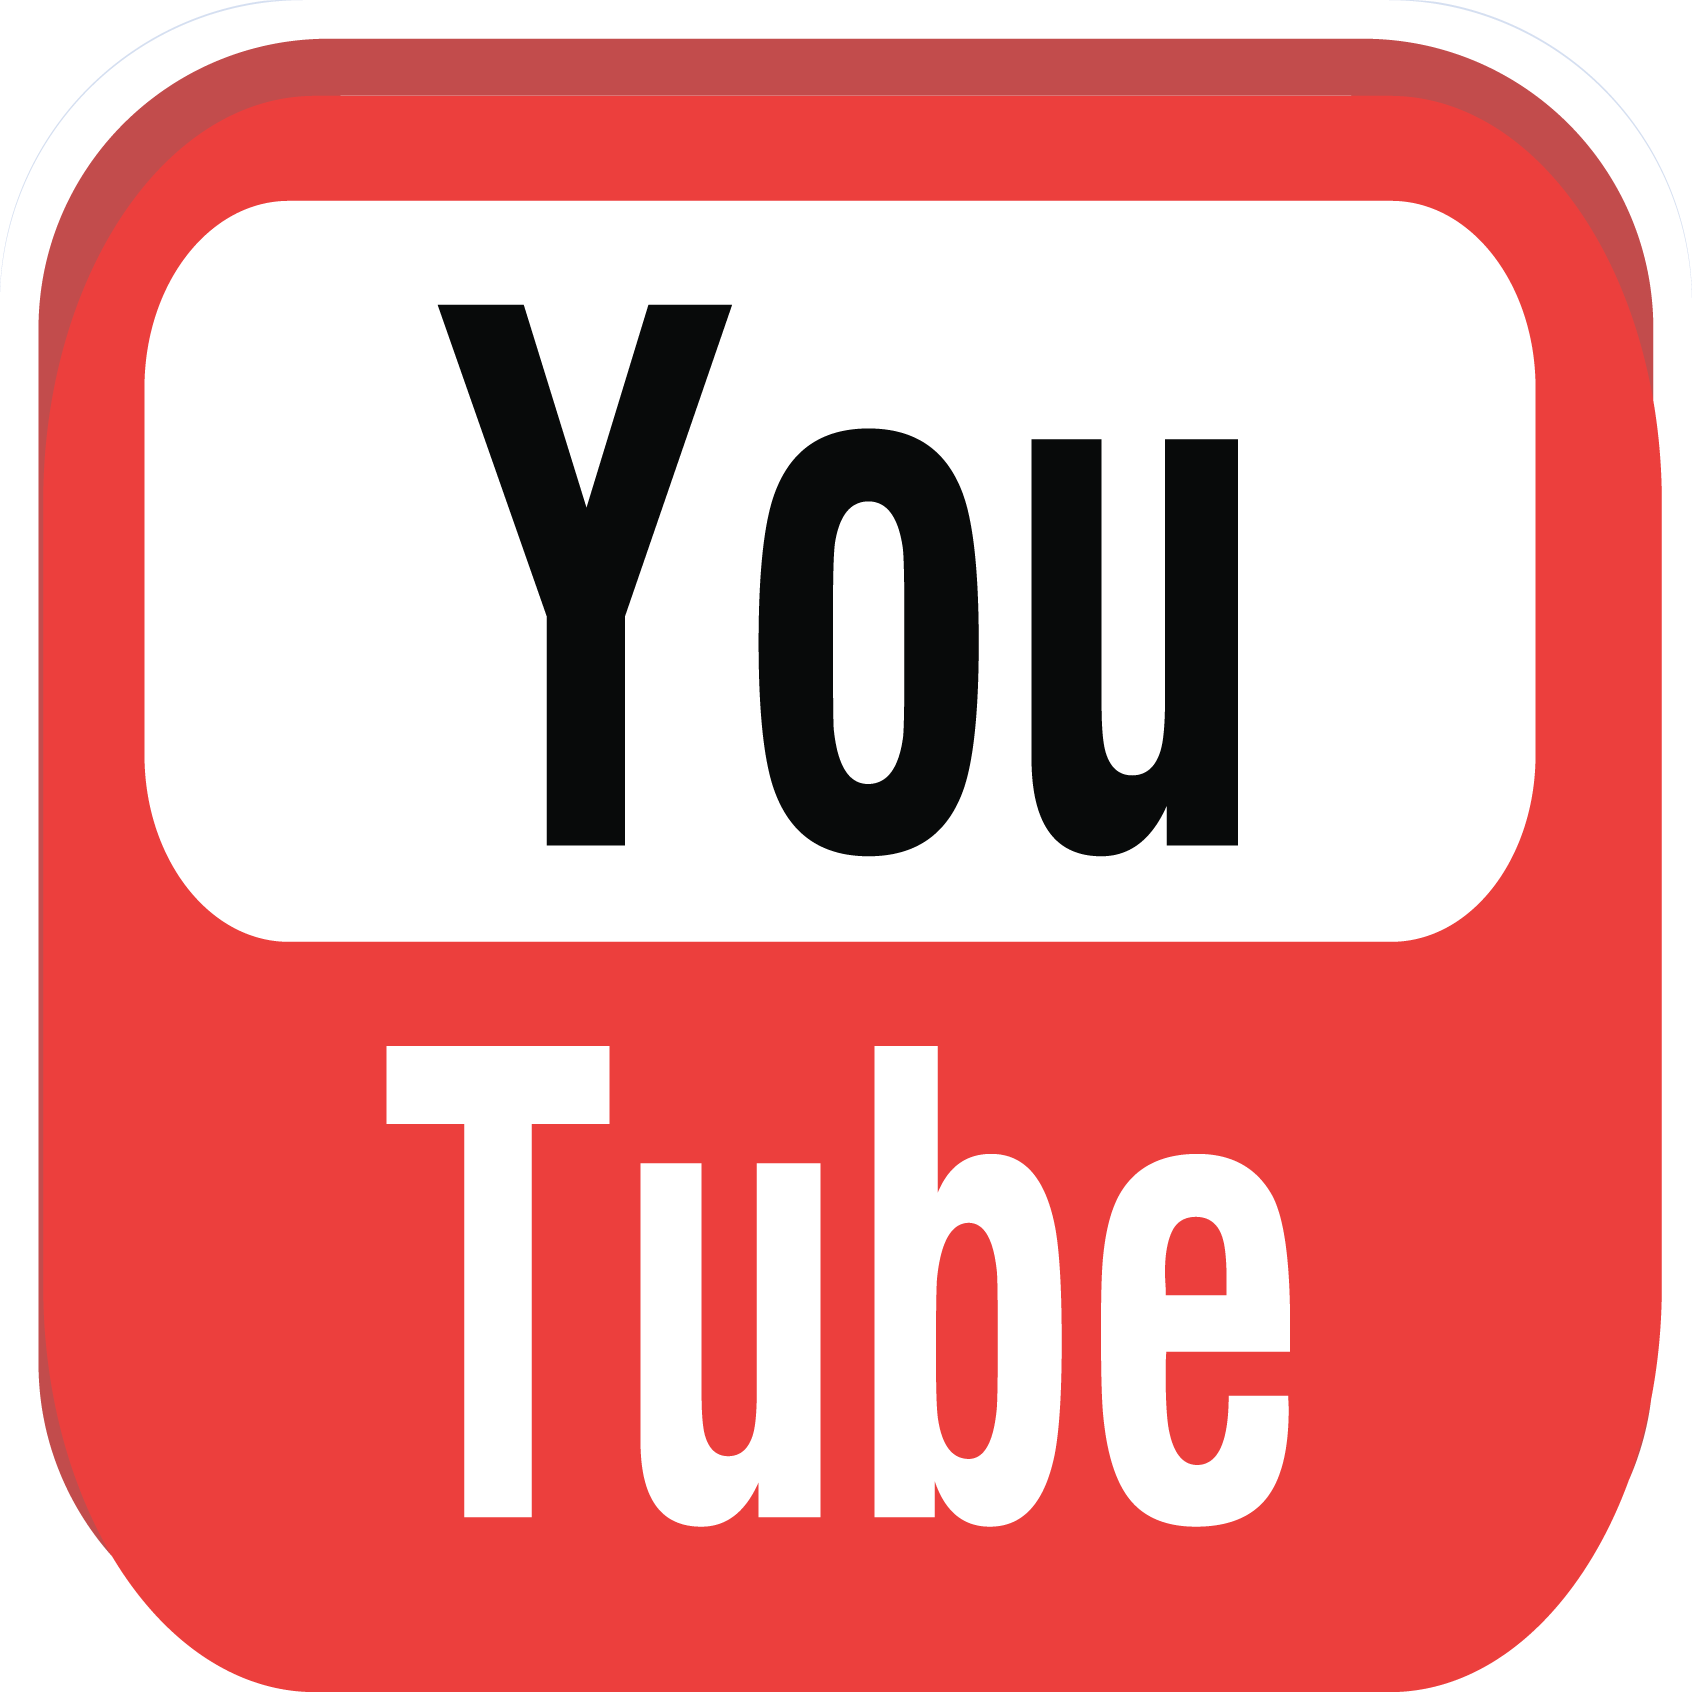 Youtube Download Png PNG Image - PNG Youtube